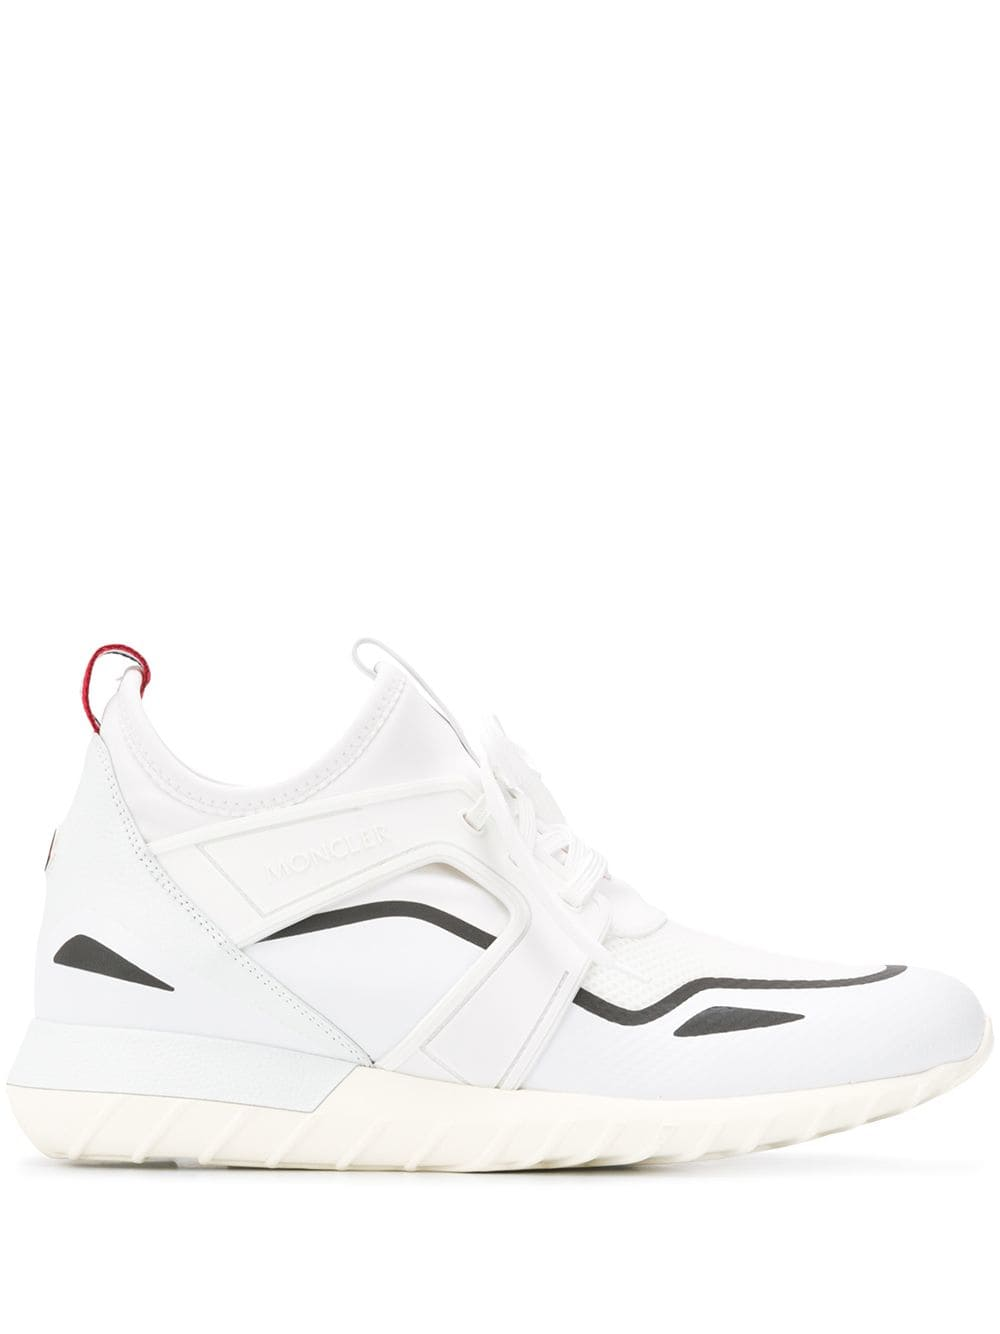 Moncler, Hi top, Leather sneakers